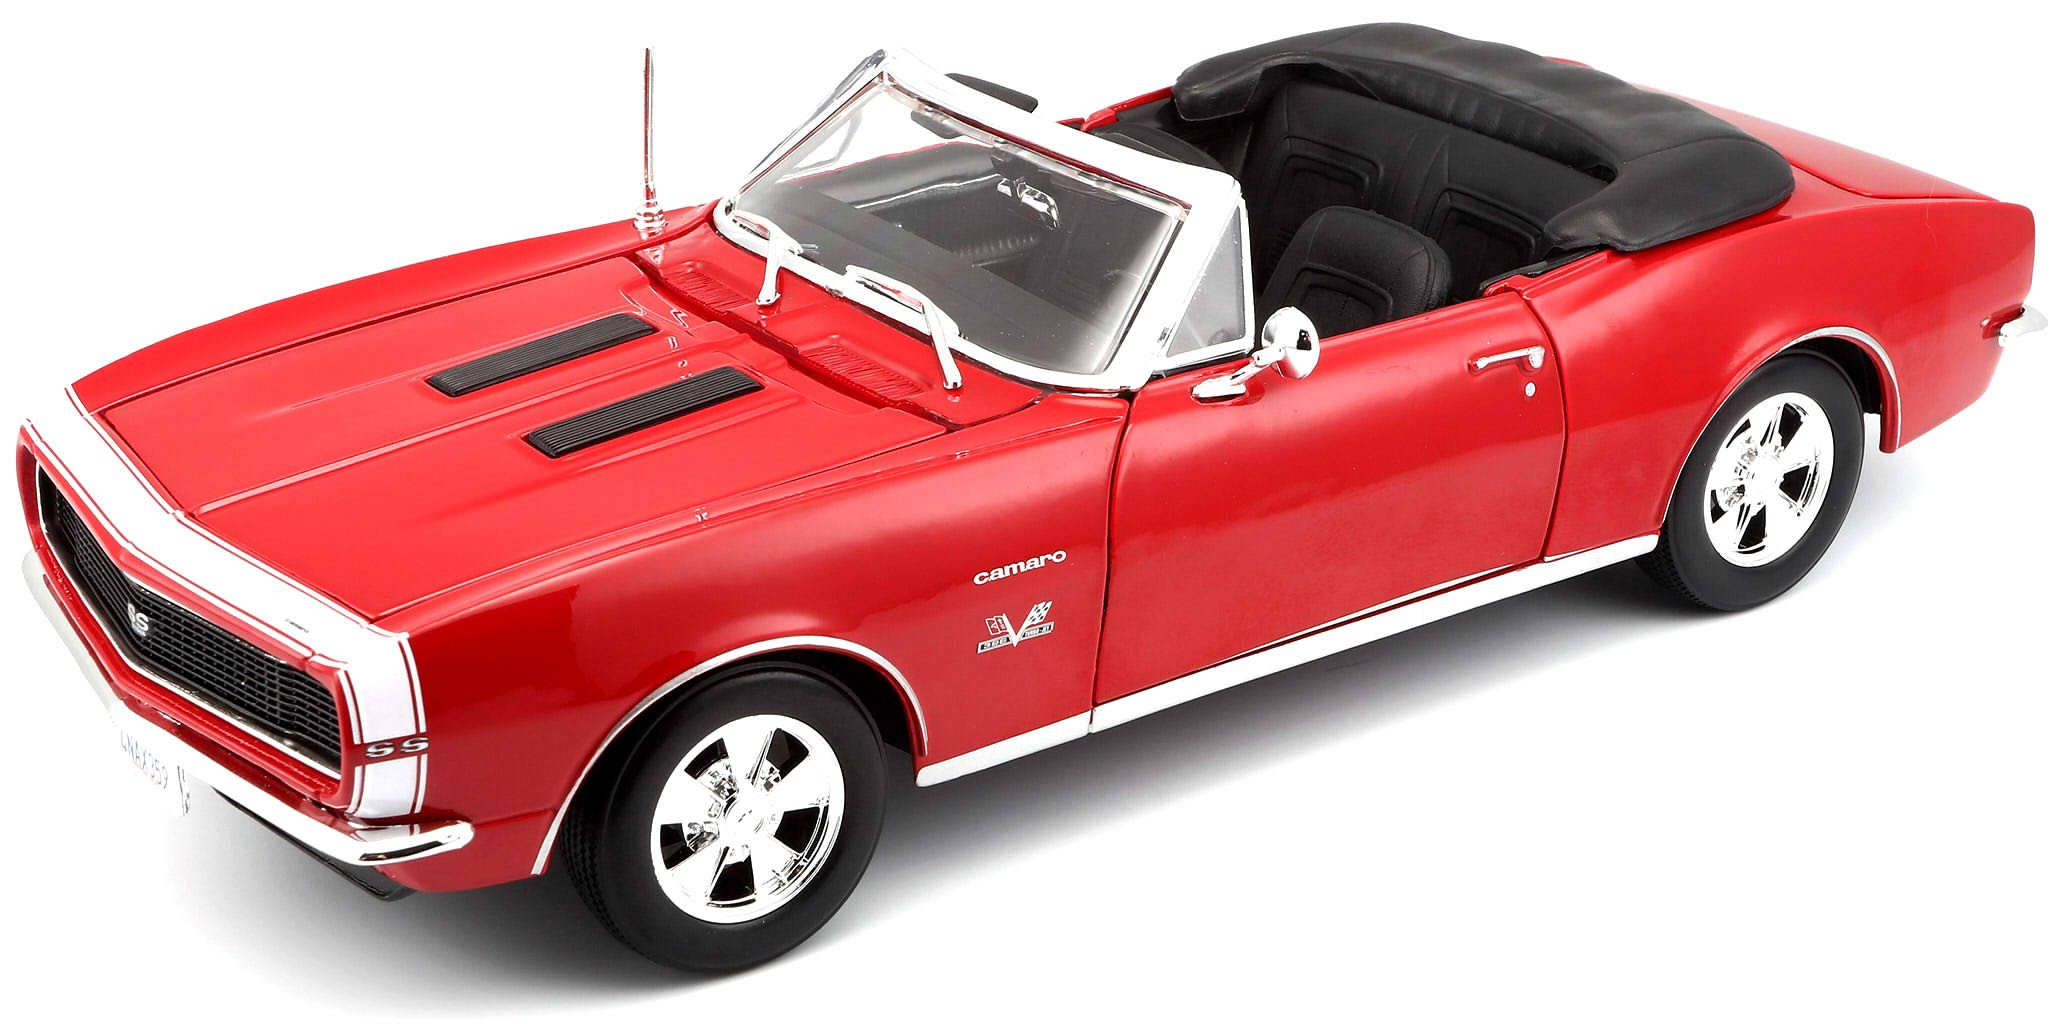 Maisto 1:18 Scale 1967 Chevy Camaro SS 396 Convertible Diecast Vehicle (Colors May Vary)